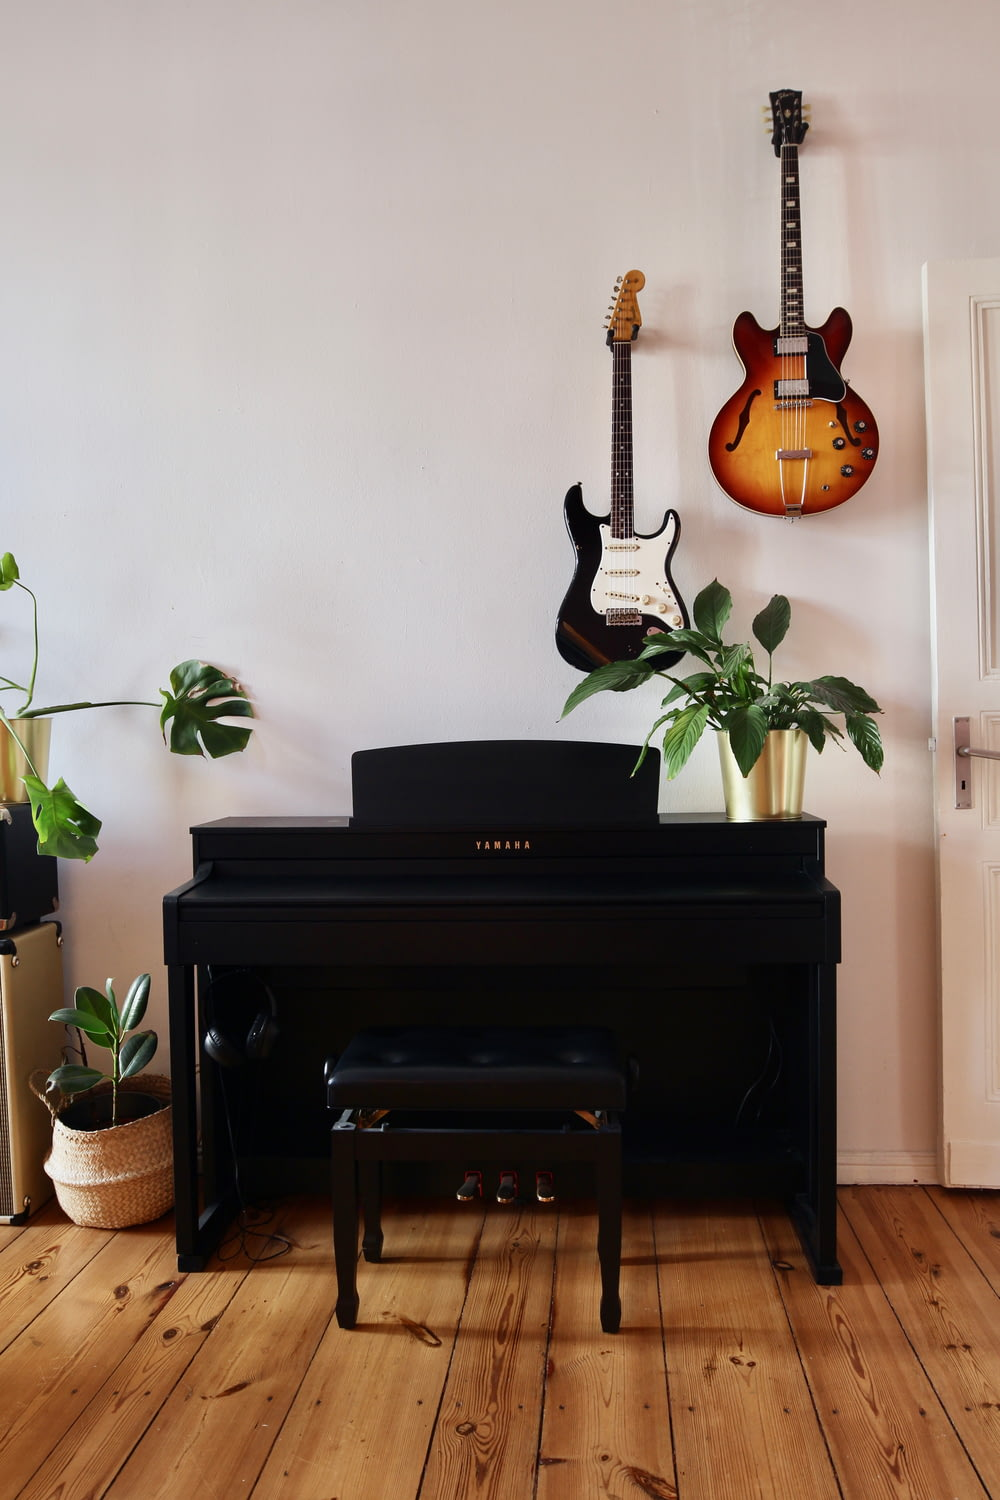 brown and black electric guitar on black guitar stand